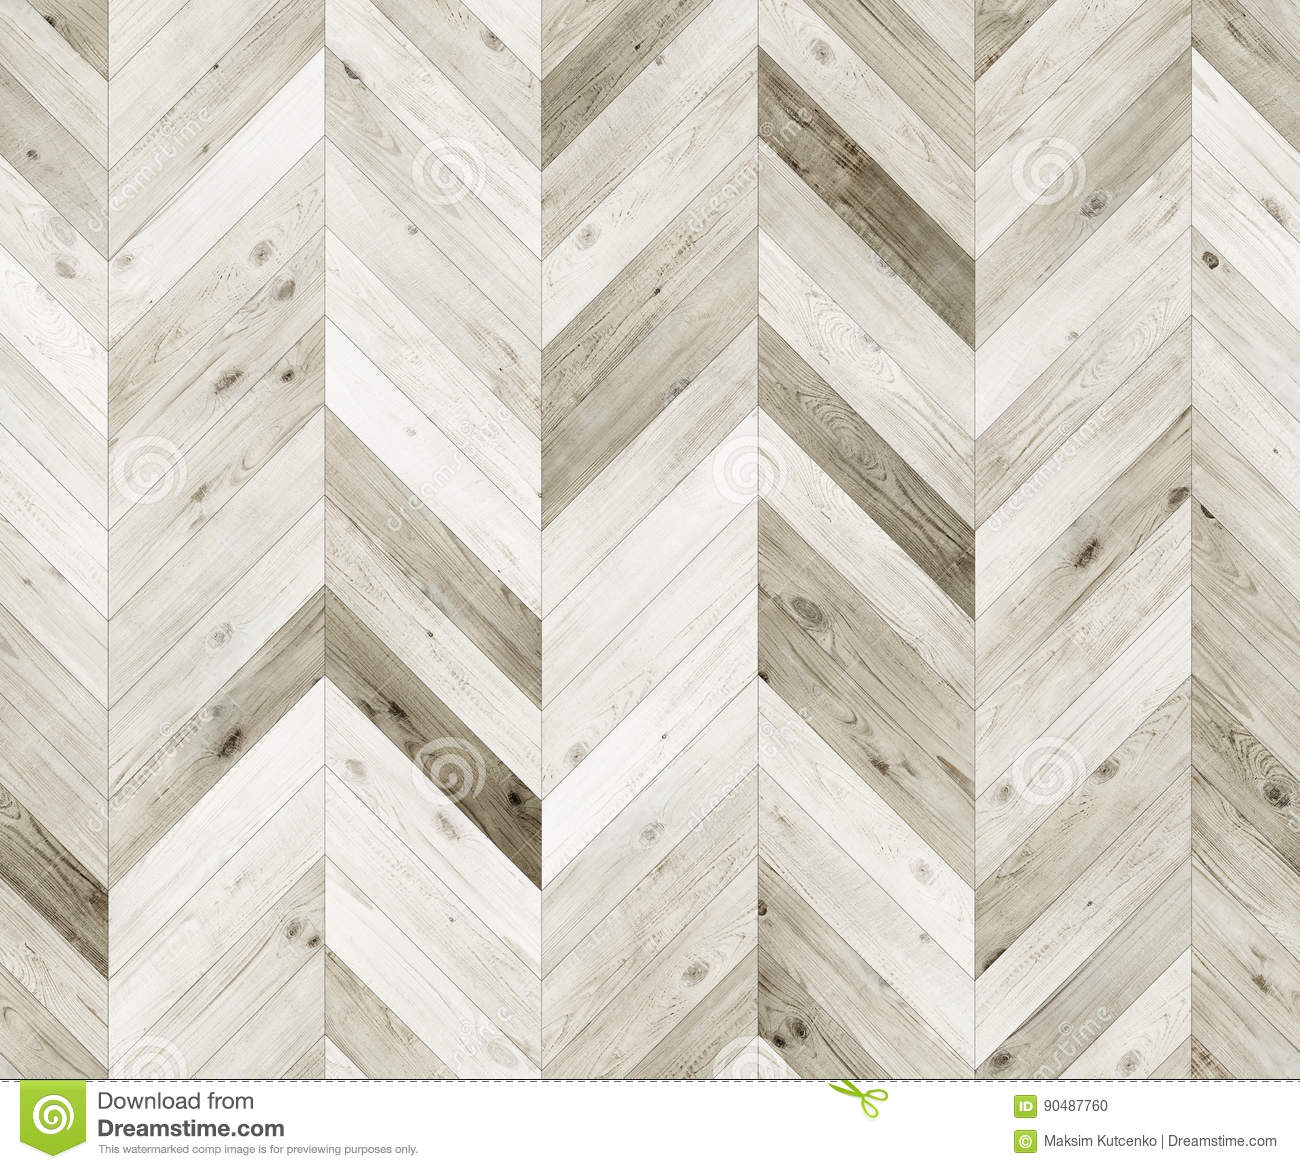 chevron bleached natural parquet seamless floor texture stock photo image 90487760. Black Bedroom Furniture Sets. Home Design Ideas